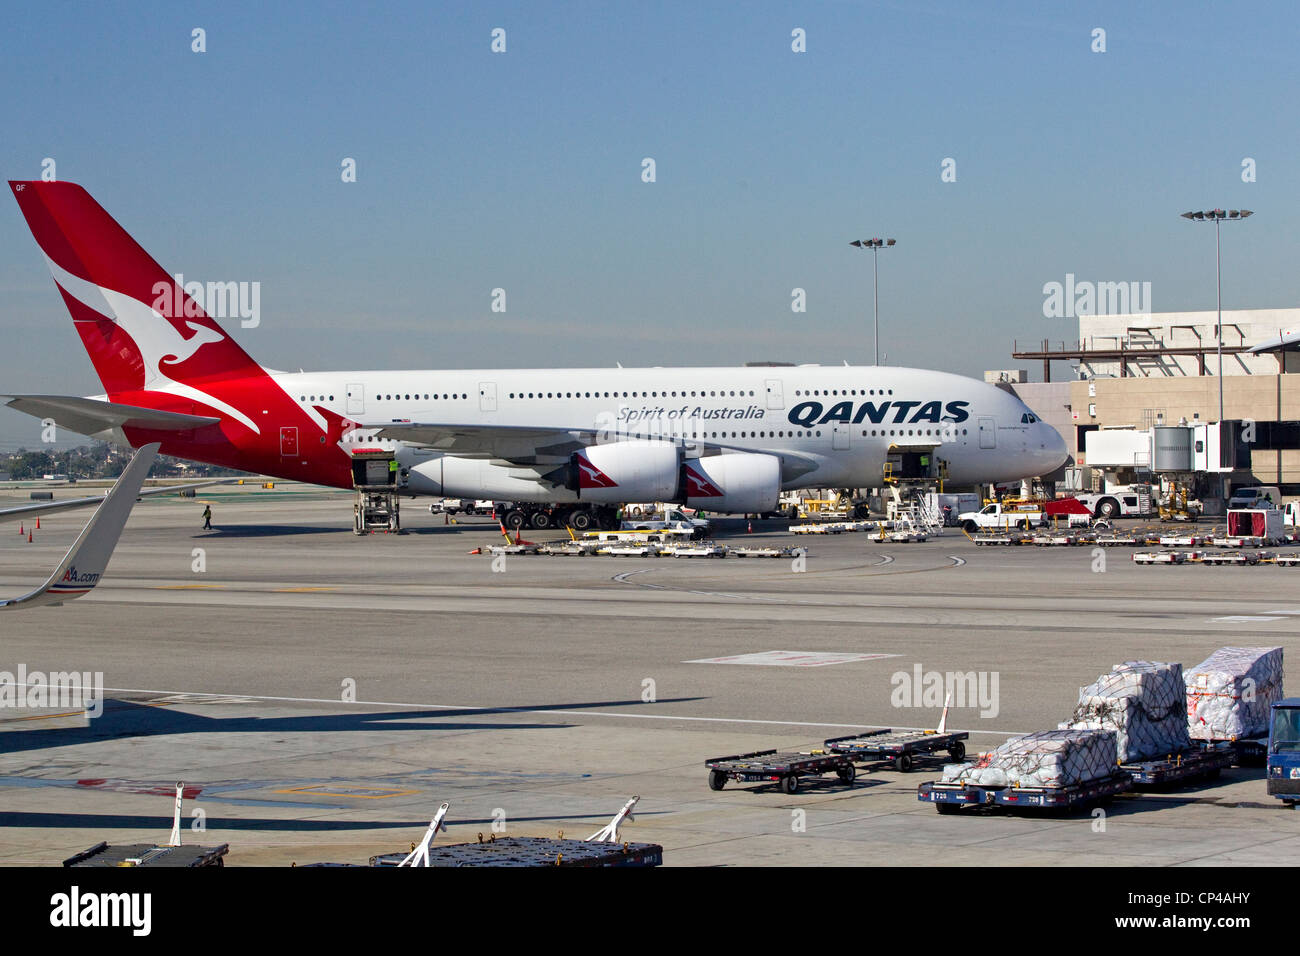 Qantas Airlines airplane on terminal at airport, Christchurch International Airport - Stock Image